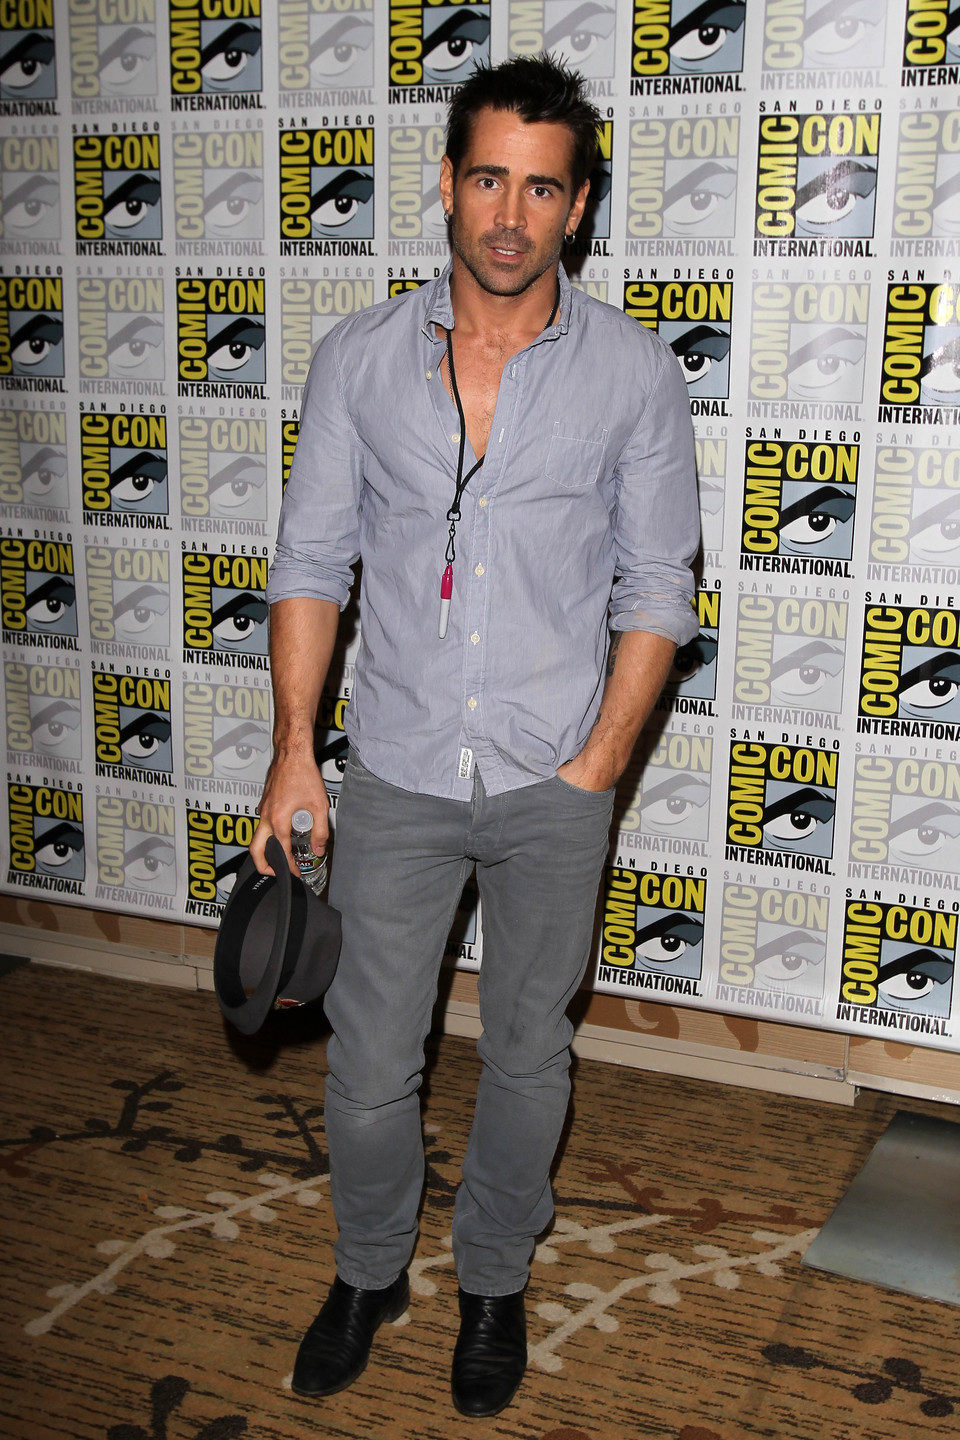 Colin Farrel en la Comic-Con 2011